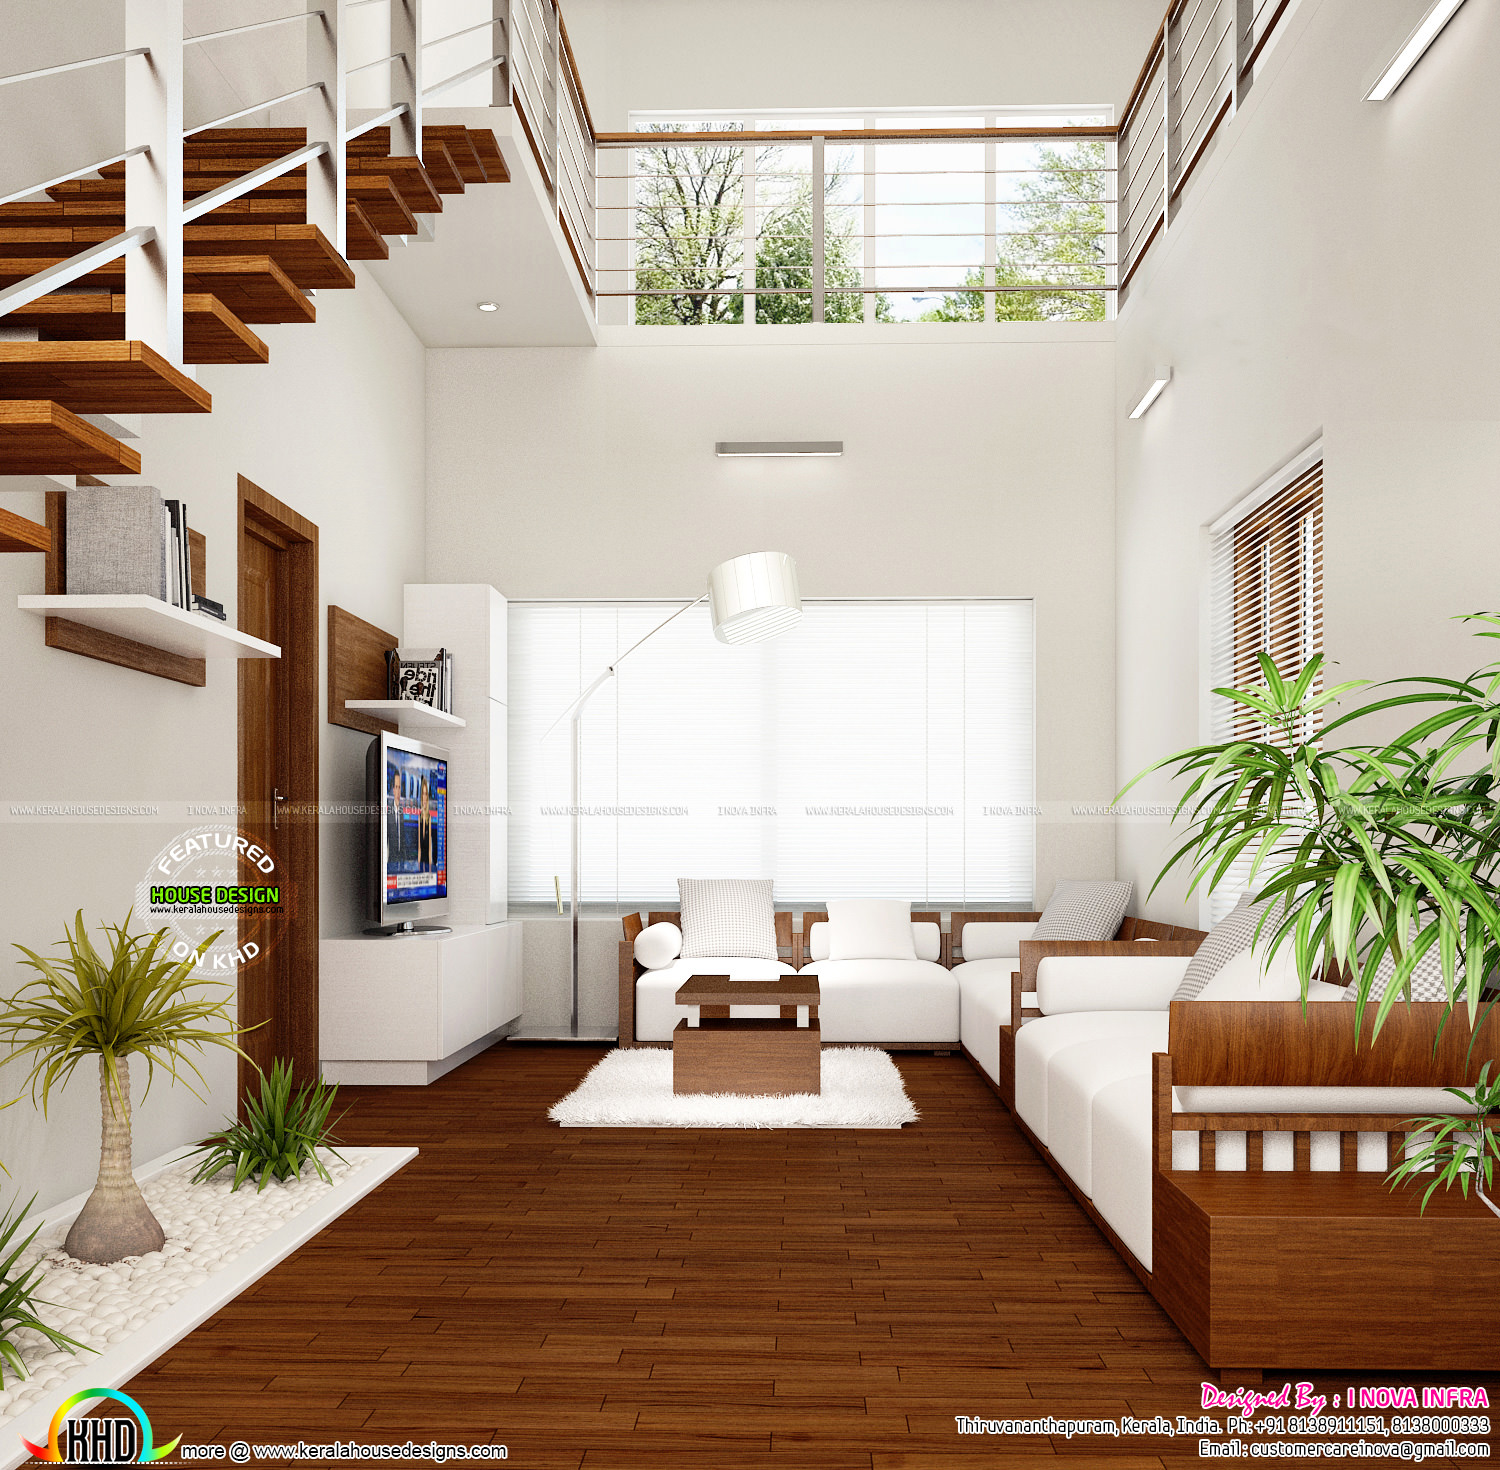 Designs Classical Interior Works At Trivandrum House Facilities